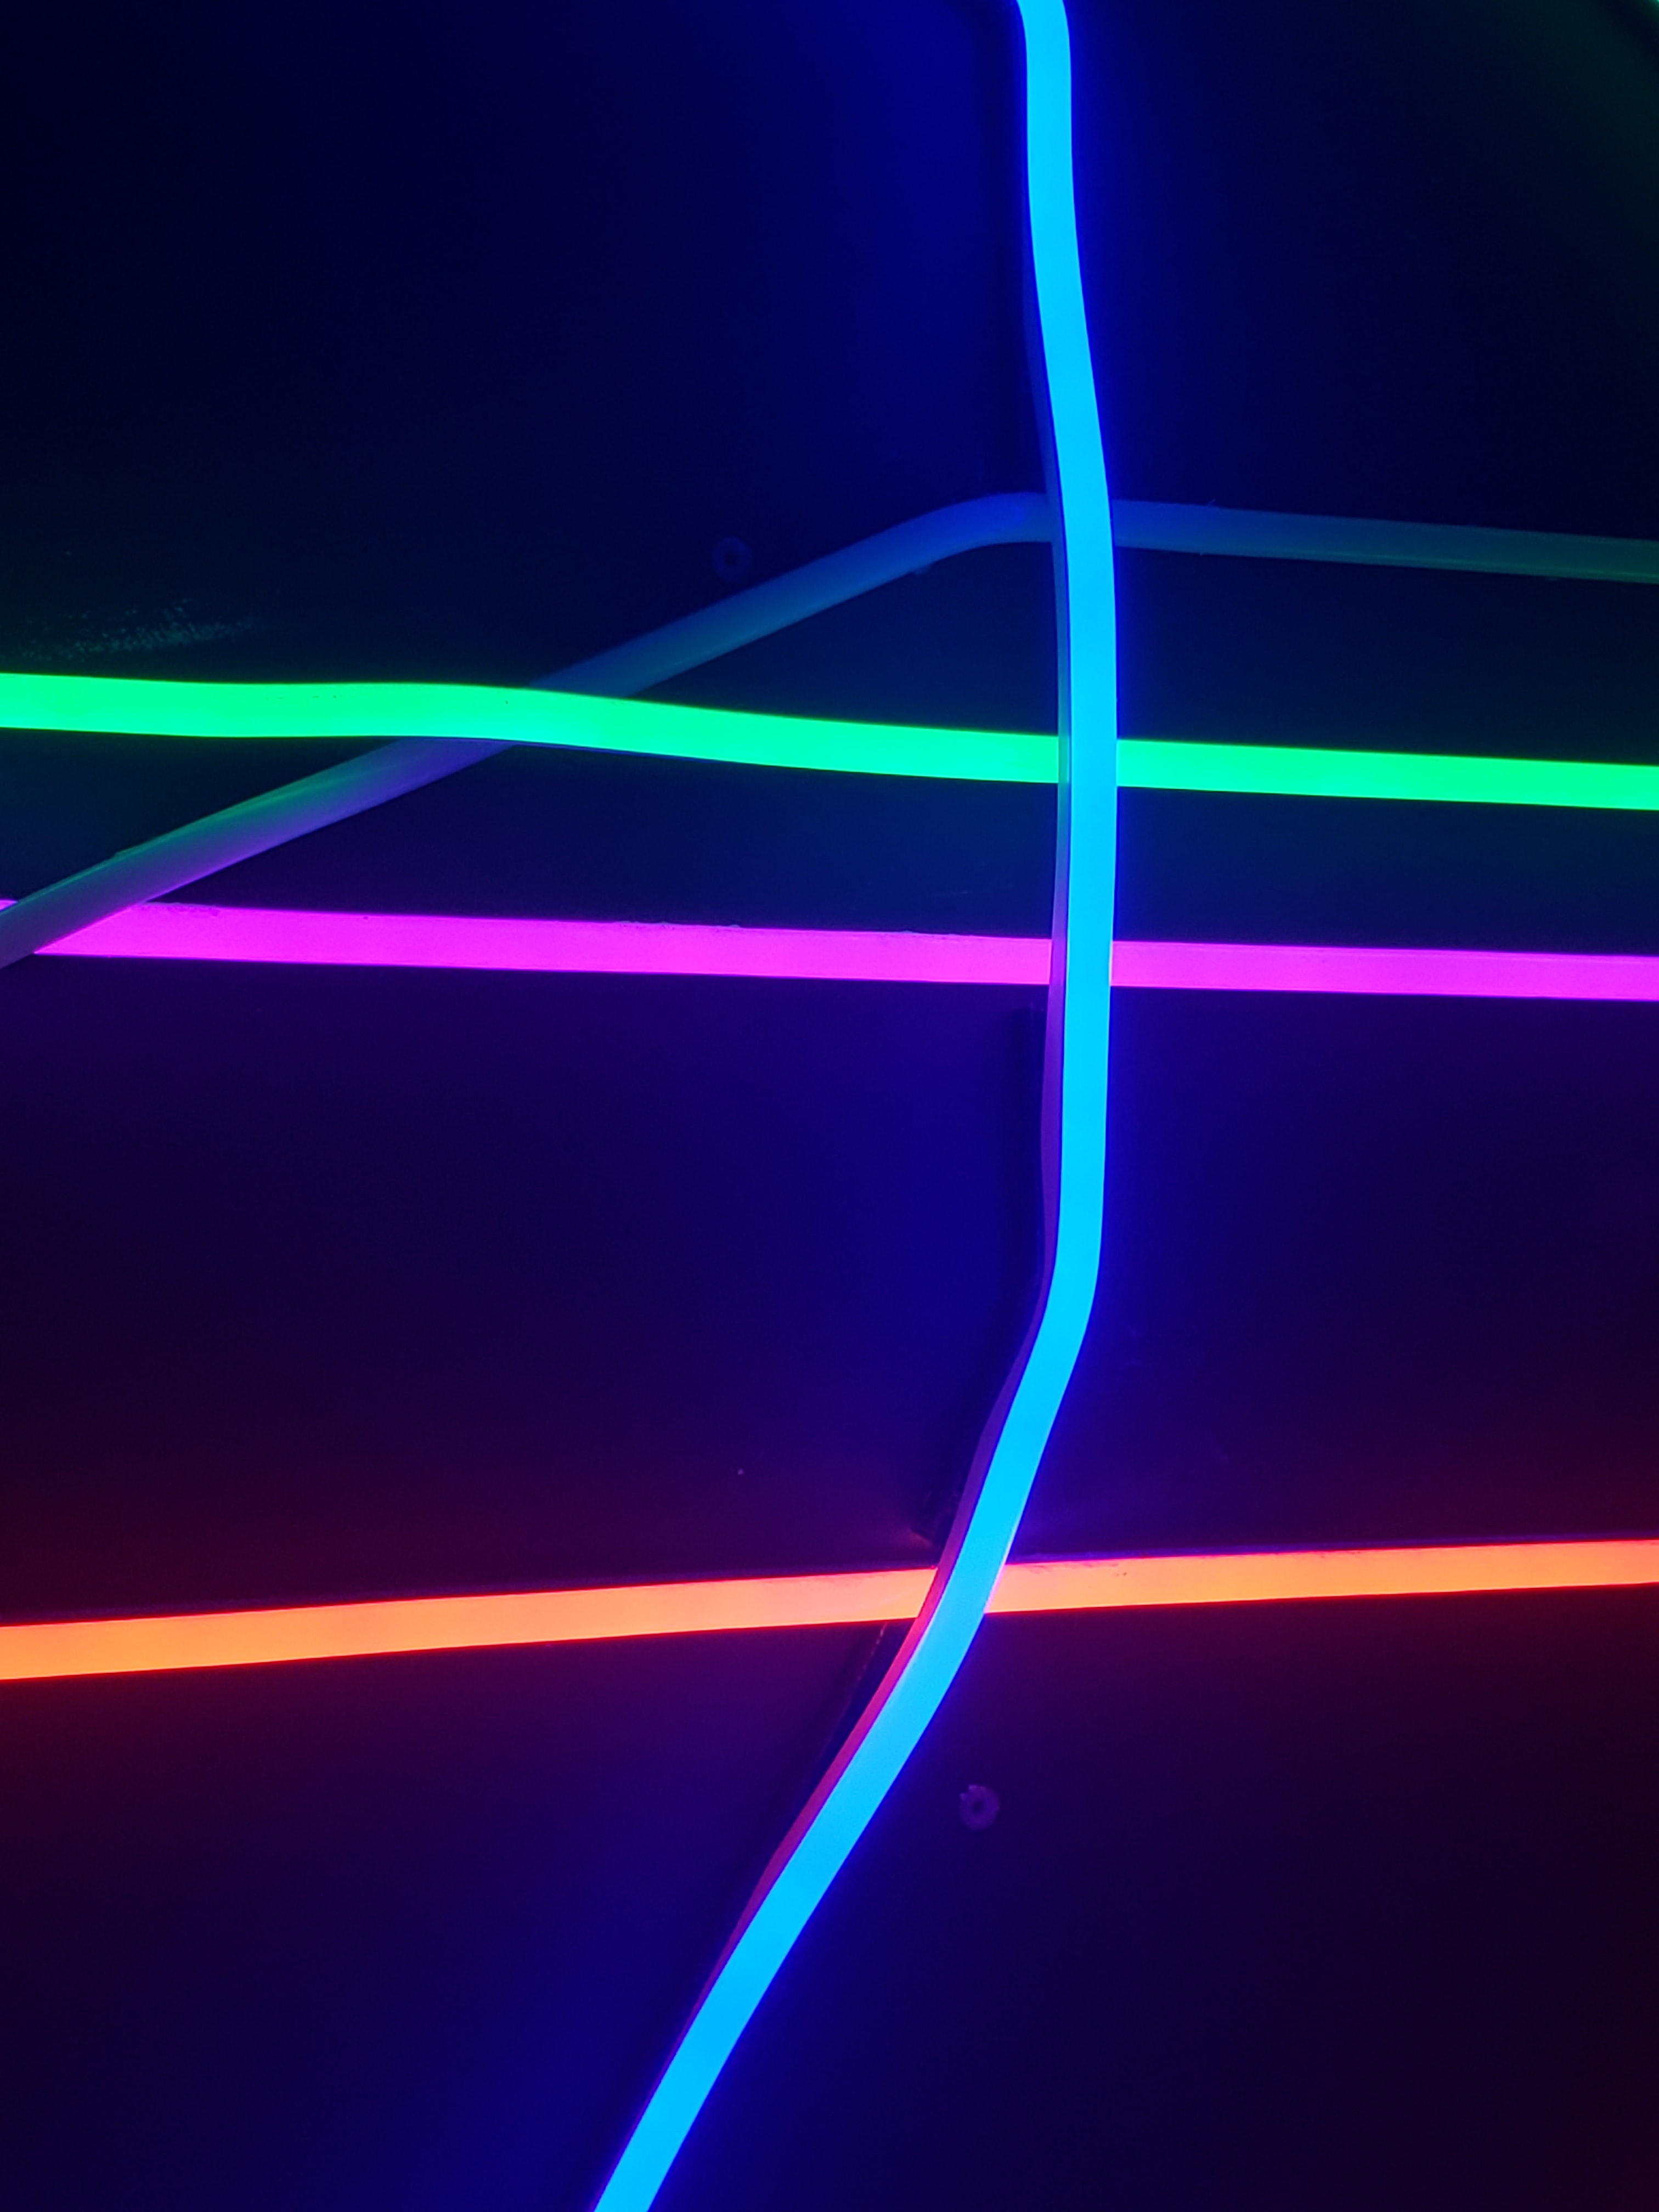 Light Neon Abstract And Dark Hd Photo By Leonardo Sanches